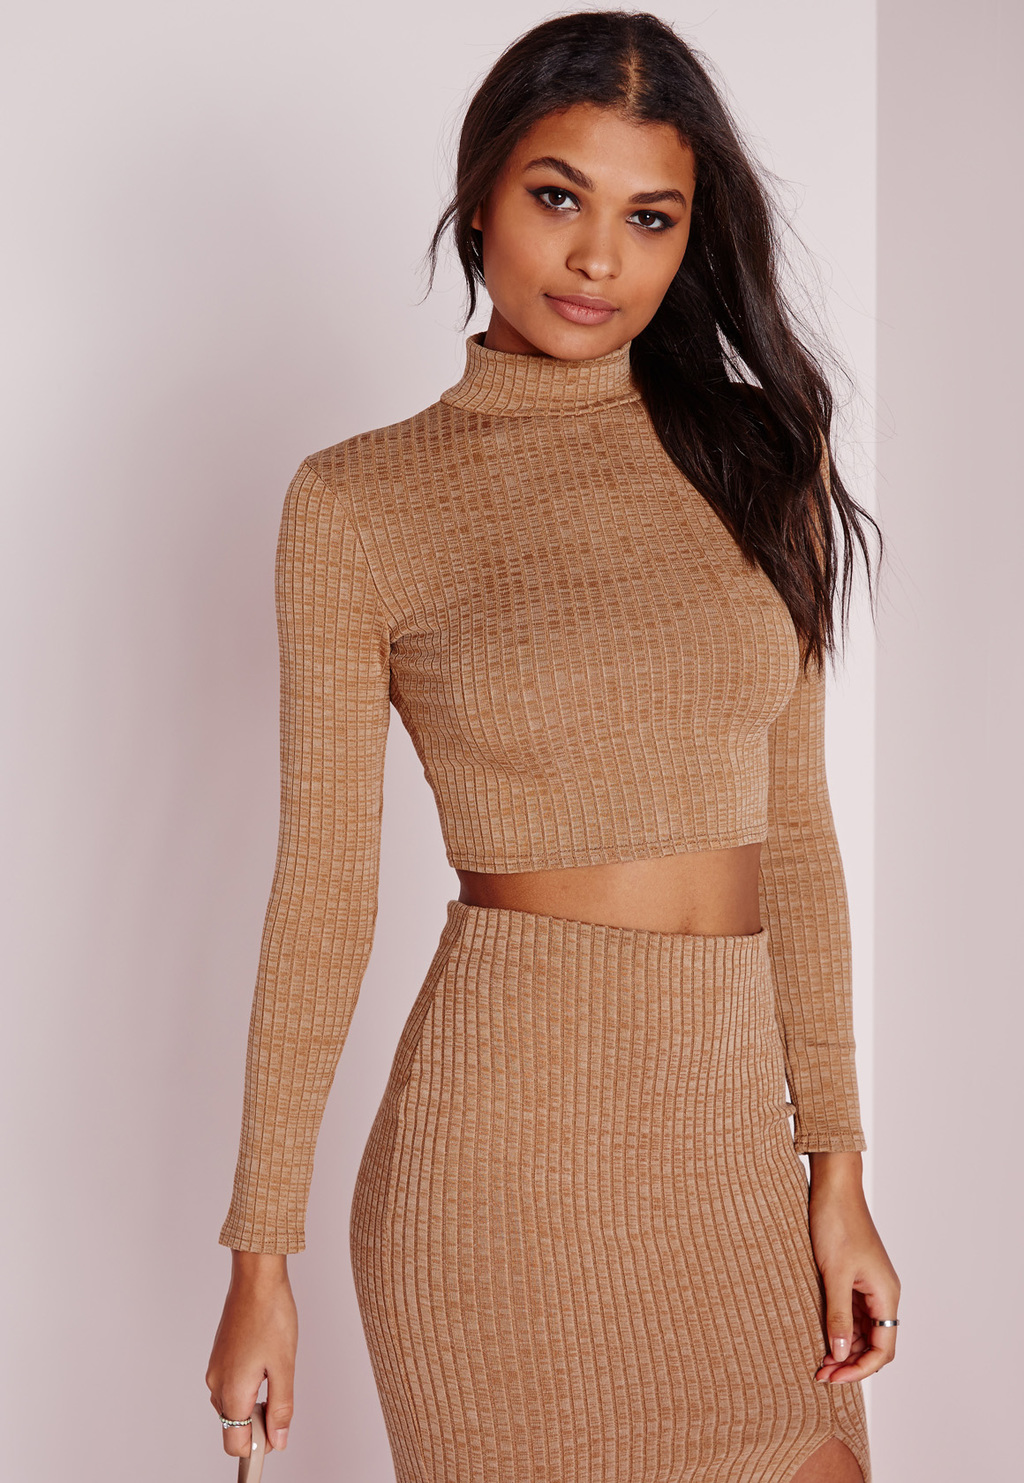 Turtle Neck Long Sleeve Jersey Crop Top Camel, Beige - pattern: plain; neckline: high neck; length: cropped; predominant colour: camel; occasions: casual, evening; style: top; fibres: cotton - mix; fit: body skimming; sleeve length: long sleeve; sleeve style: standard; pattern type: fabric; texture group: jersey - stretchy/drapey; season: s/s 2016